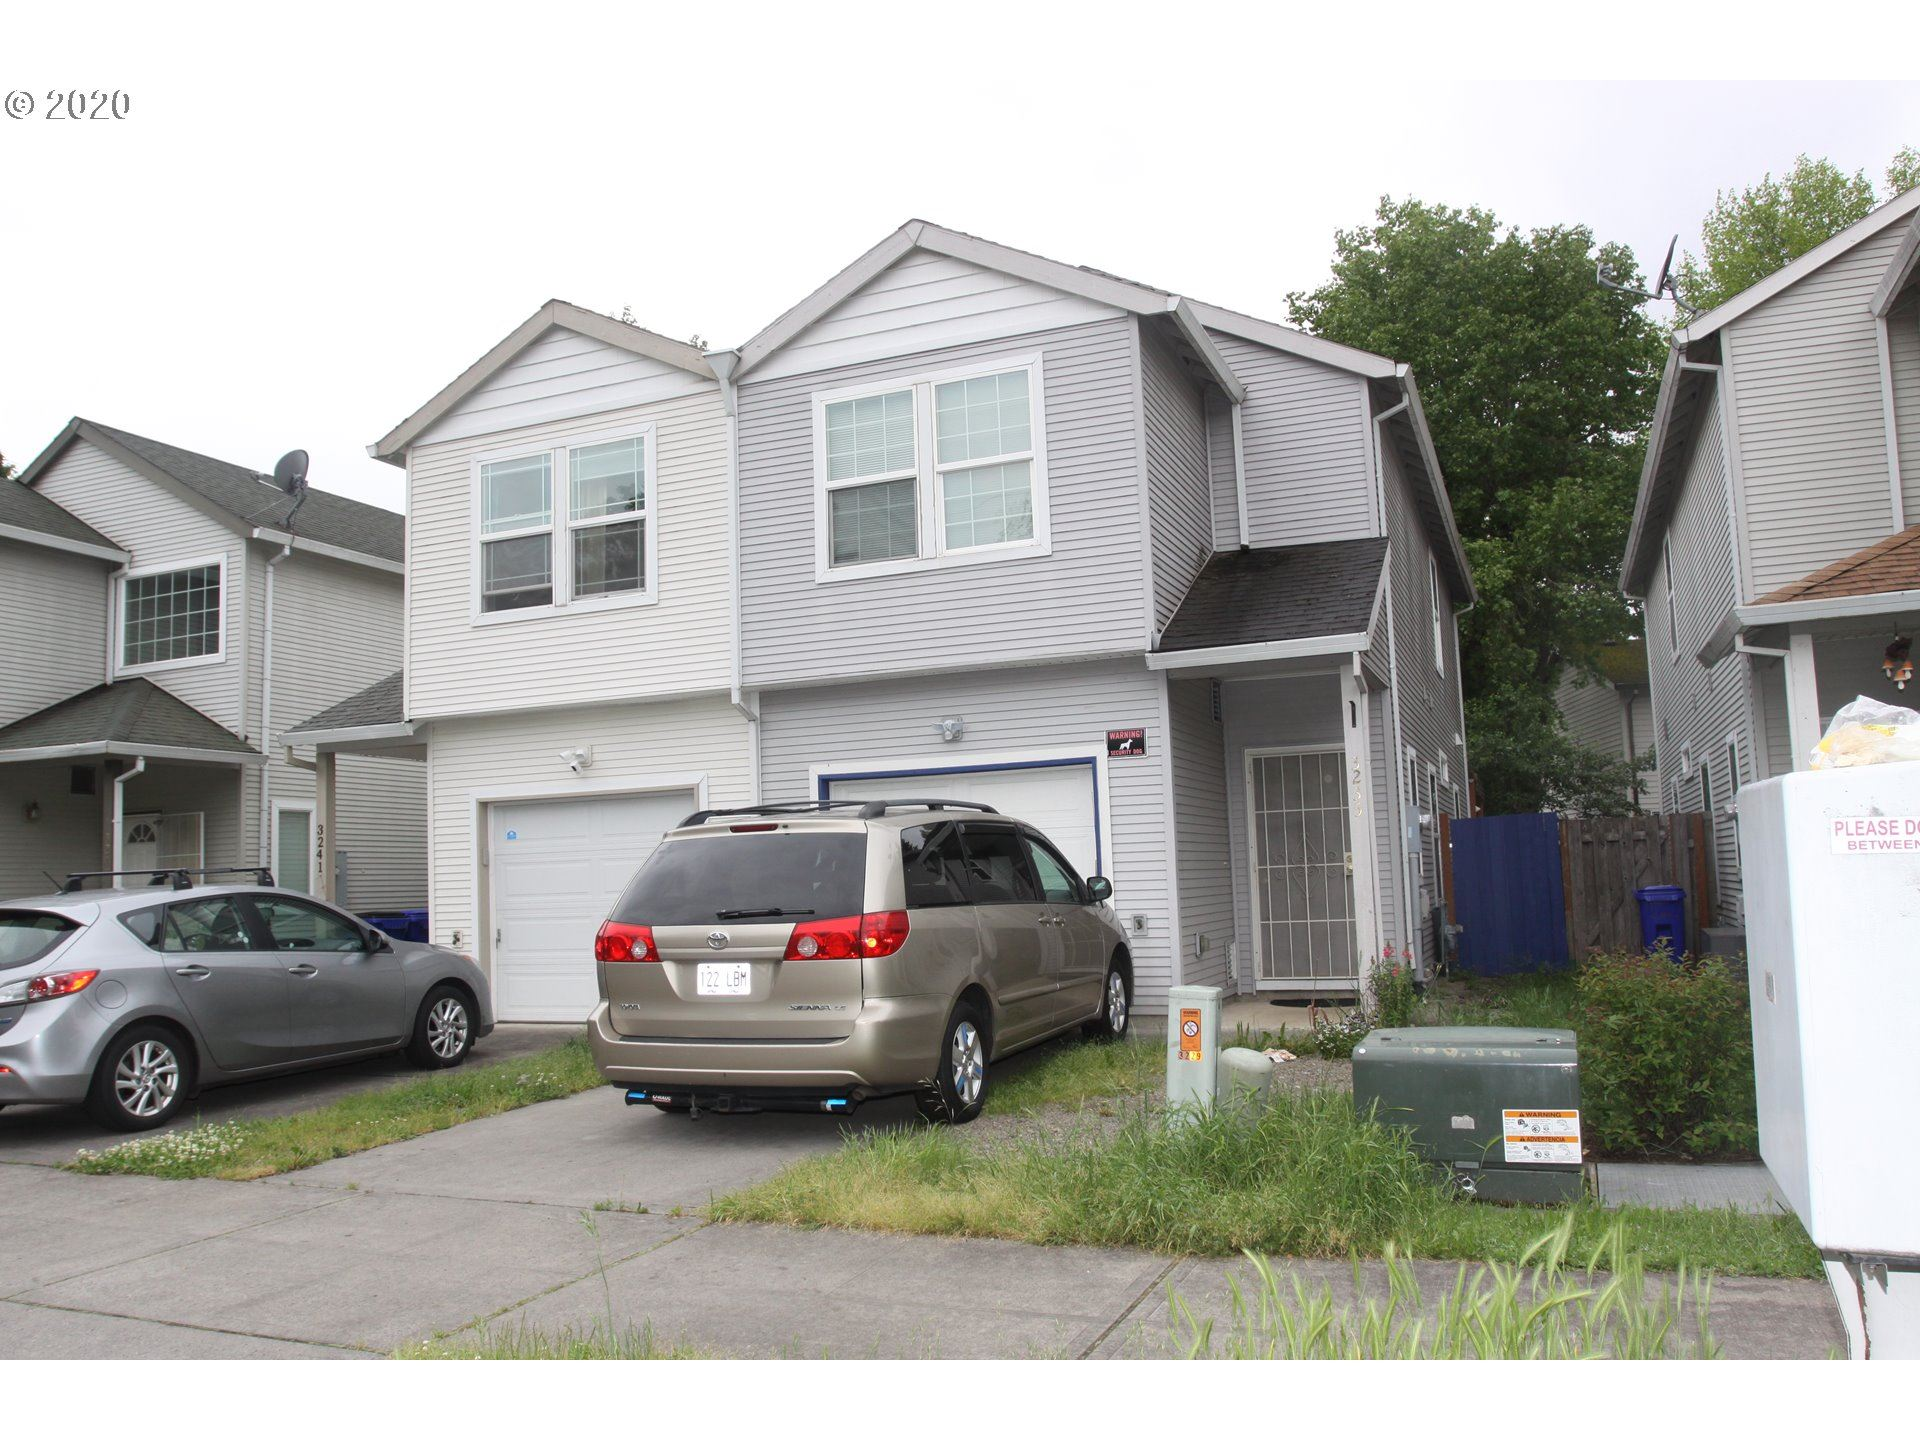 3235 SE 138TH AVE, Portland, OR 97236 - MLS#: 20313766